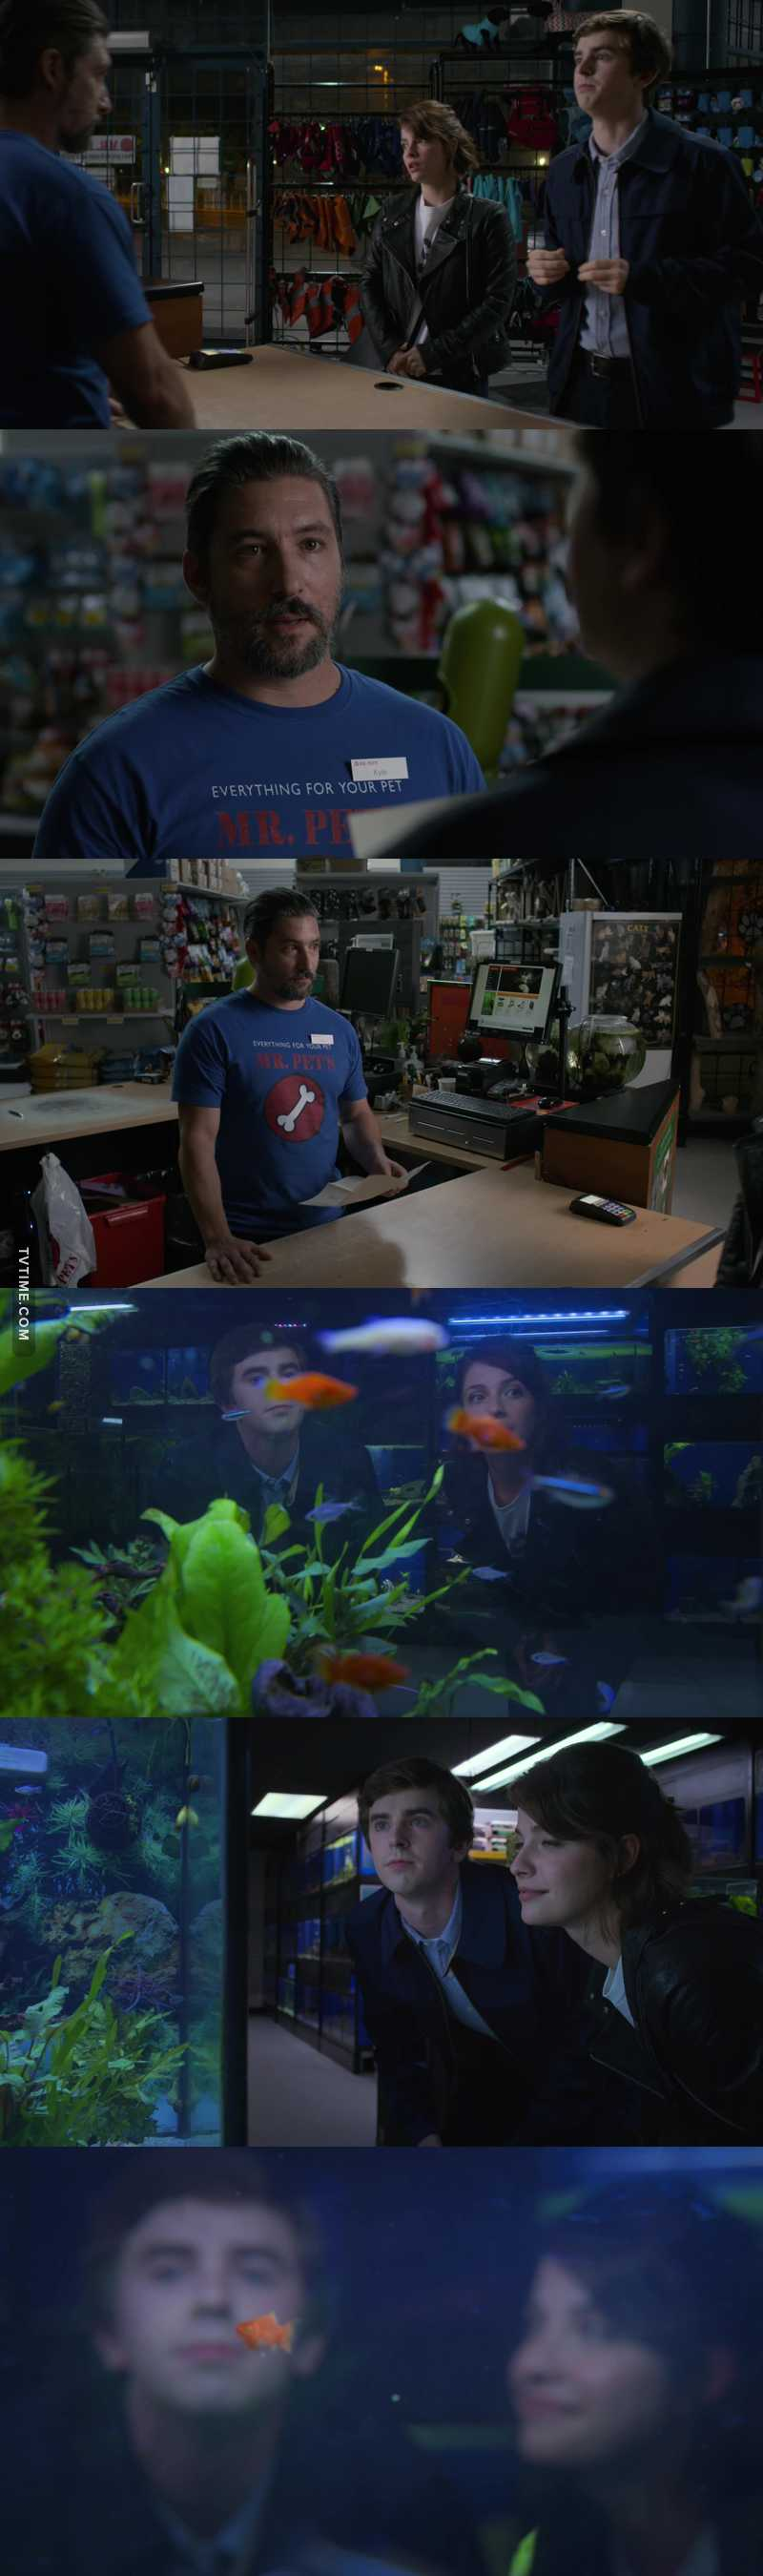 You have no cards left to play. They get a new fish. Shaun just melts your heart how he is with Lea. Awesome episode.👍❤️👏🐠